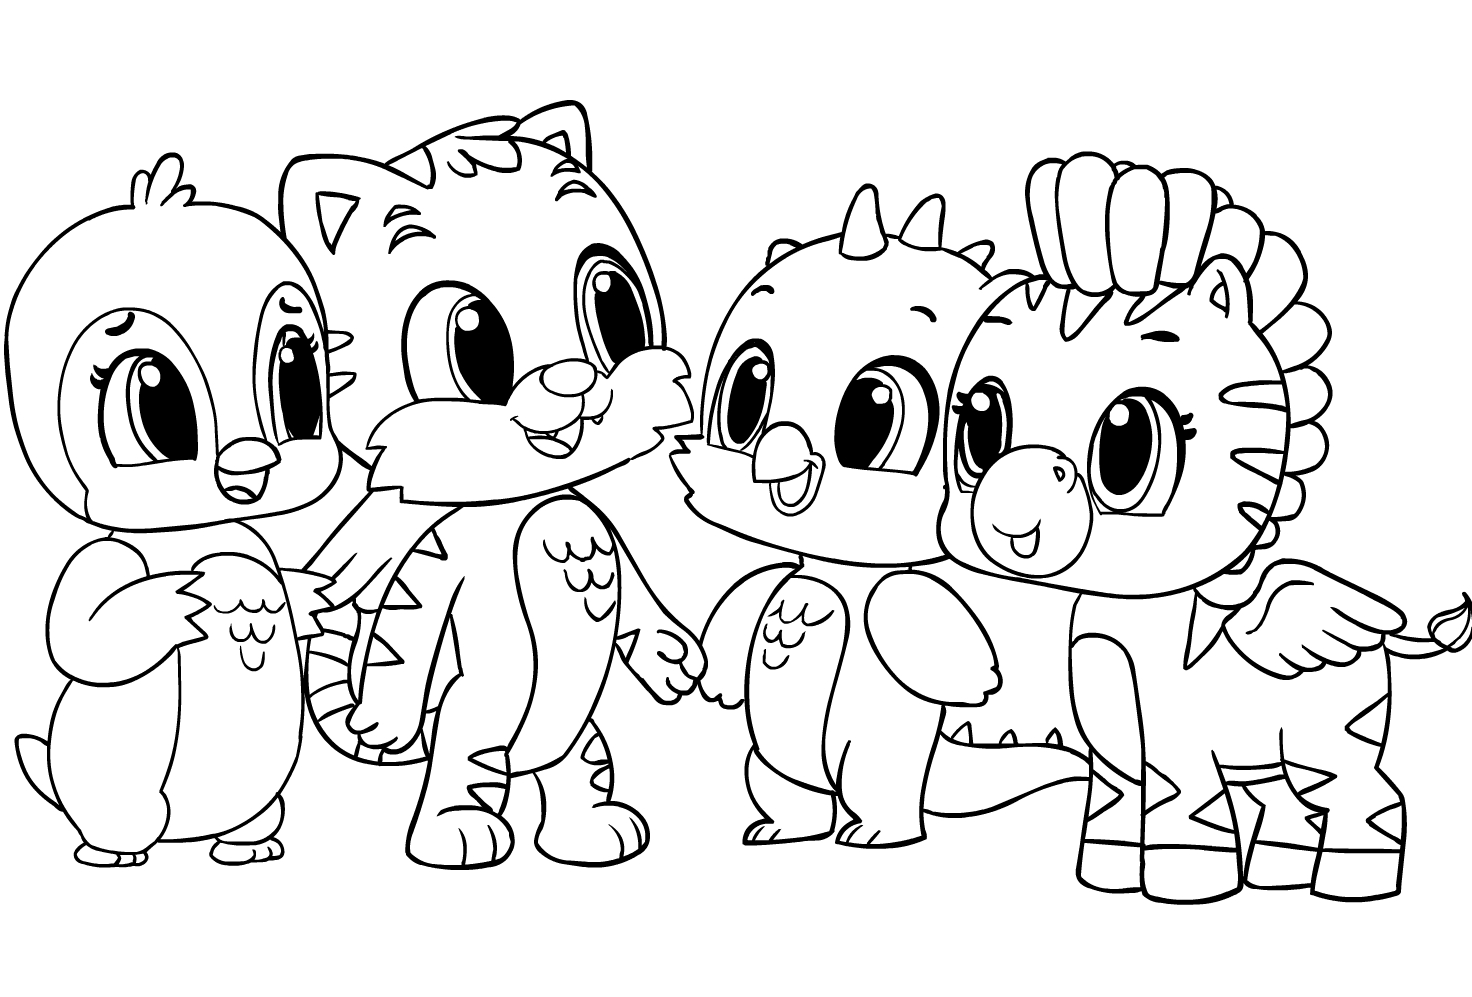 Hatchimals Coloring Page - Drawing 5